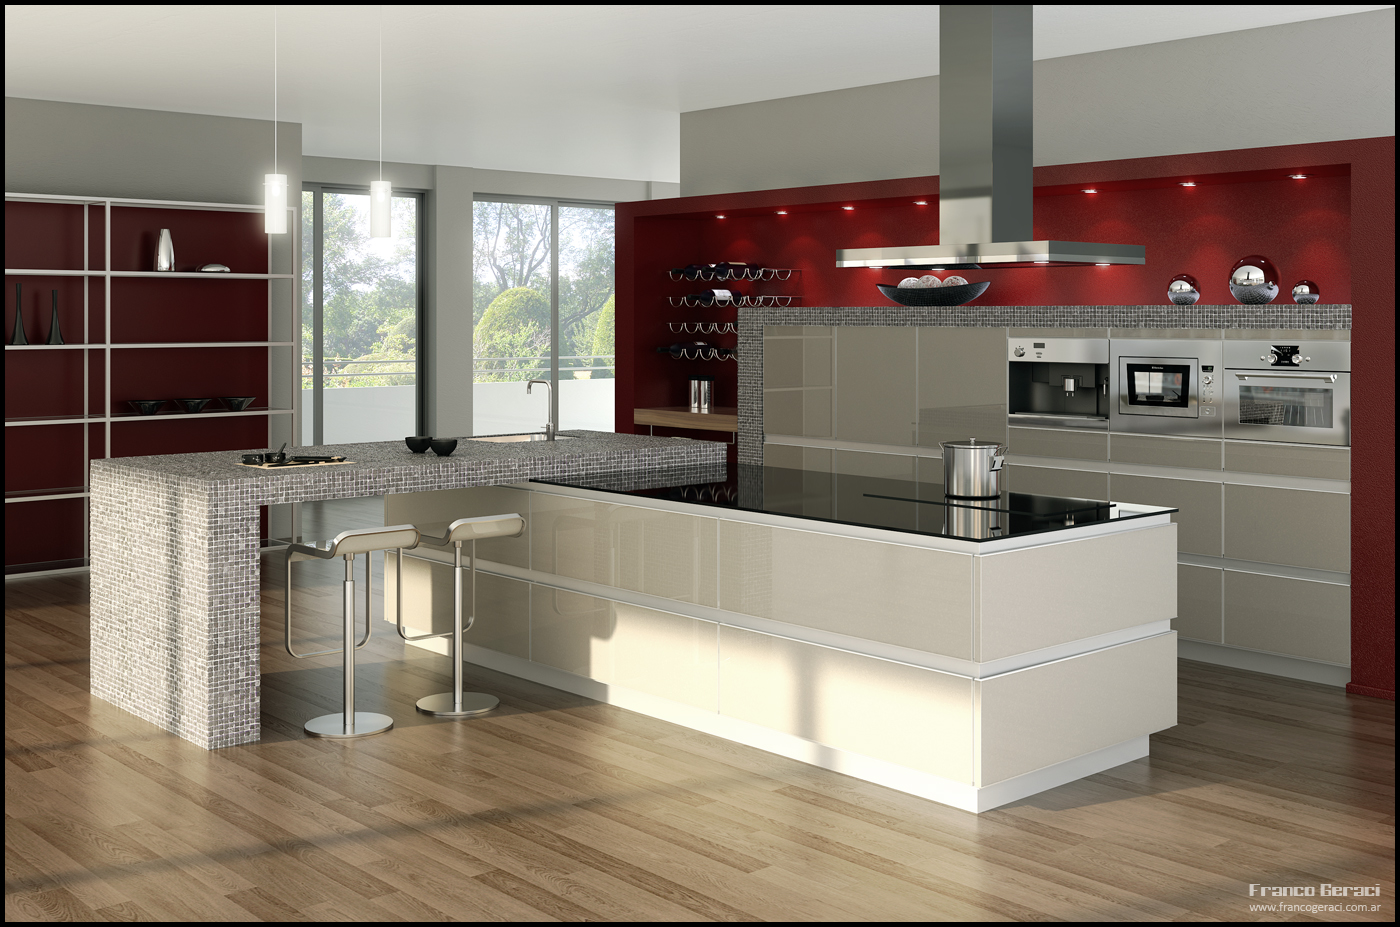 Kitchen 3D Design Images for $15 - SEOClerks